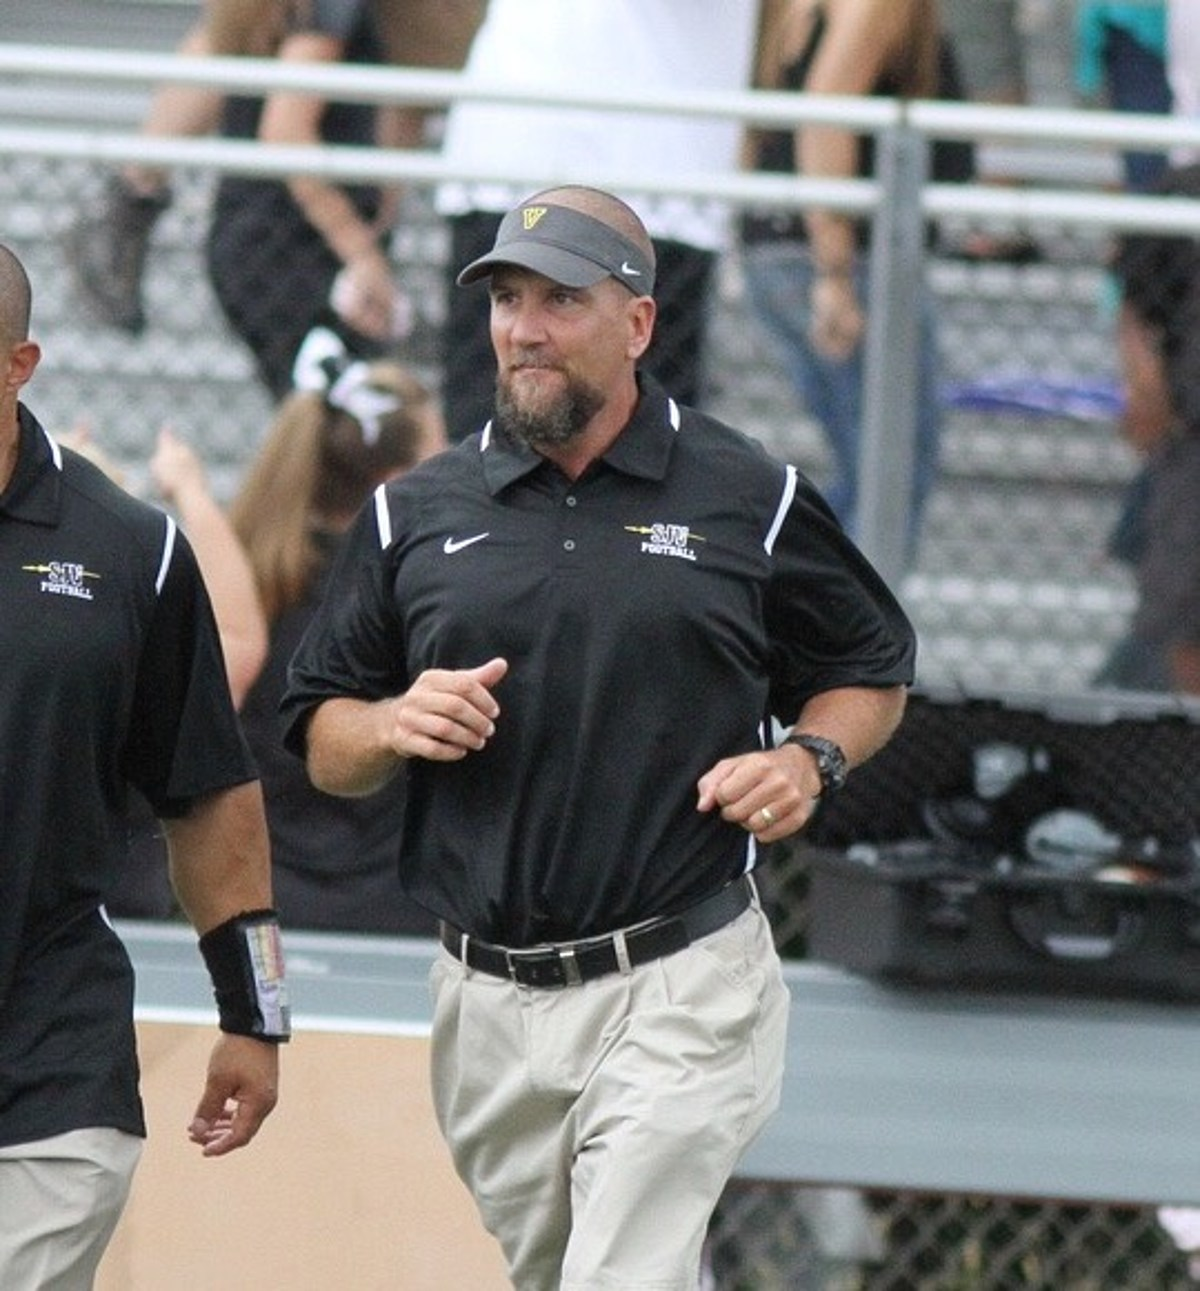 John Vianney High School: Derek Sininsky no longer head coach